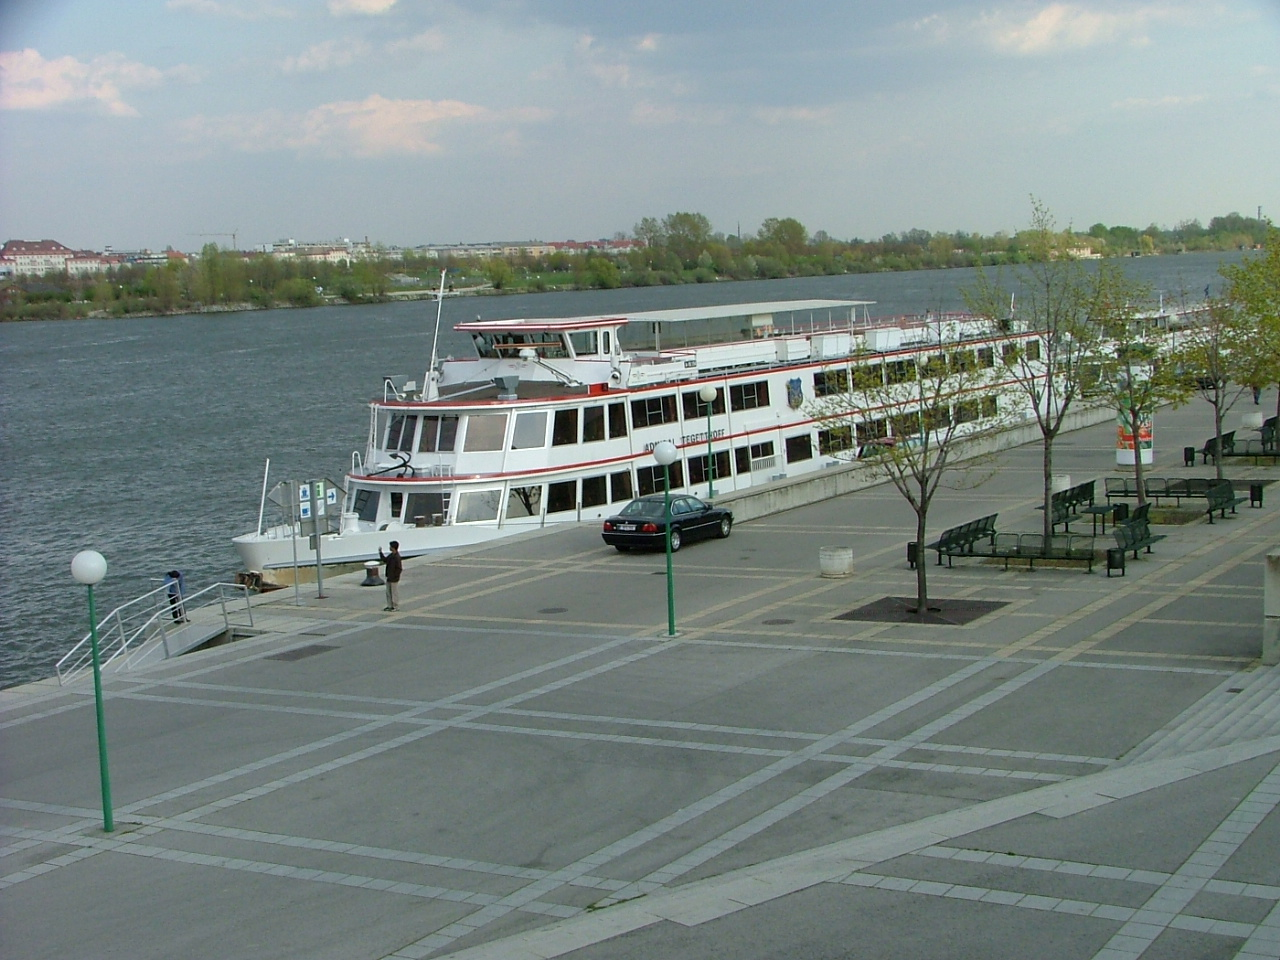 Docked in Vienna